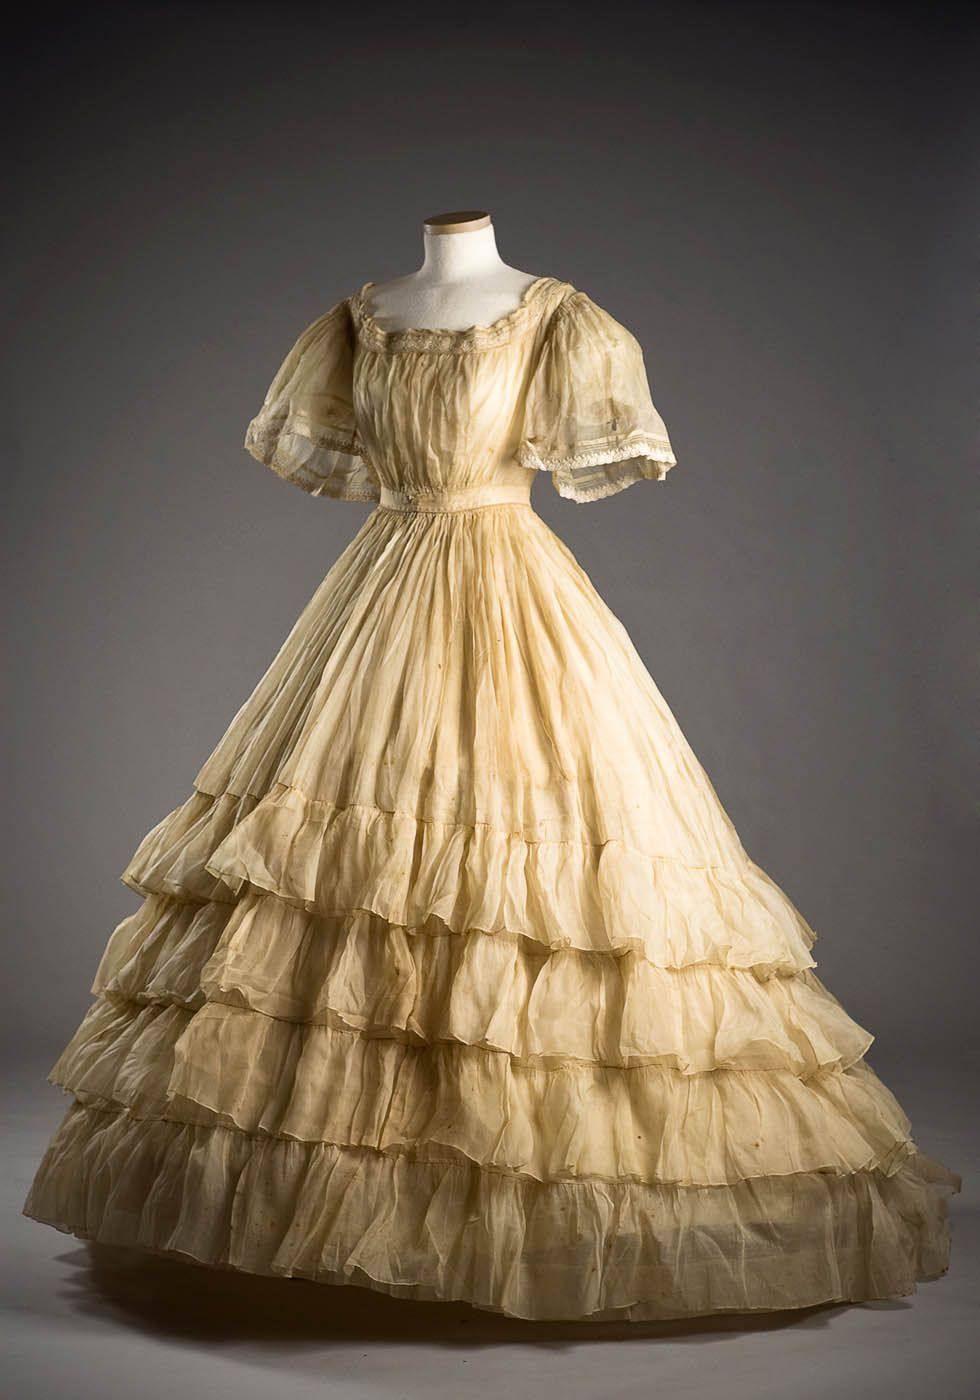 This beautiful tiered, organdy dress was worn by Marianna Howard when she married Benjamin Walter Taylor on Dec. 14, 1865.